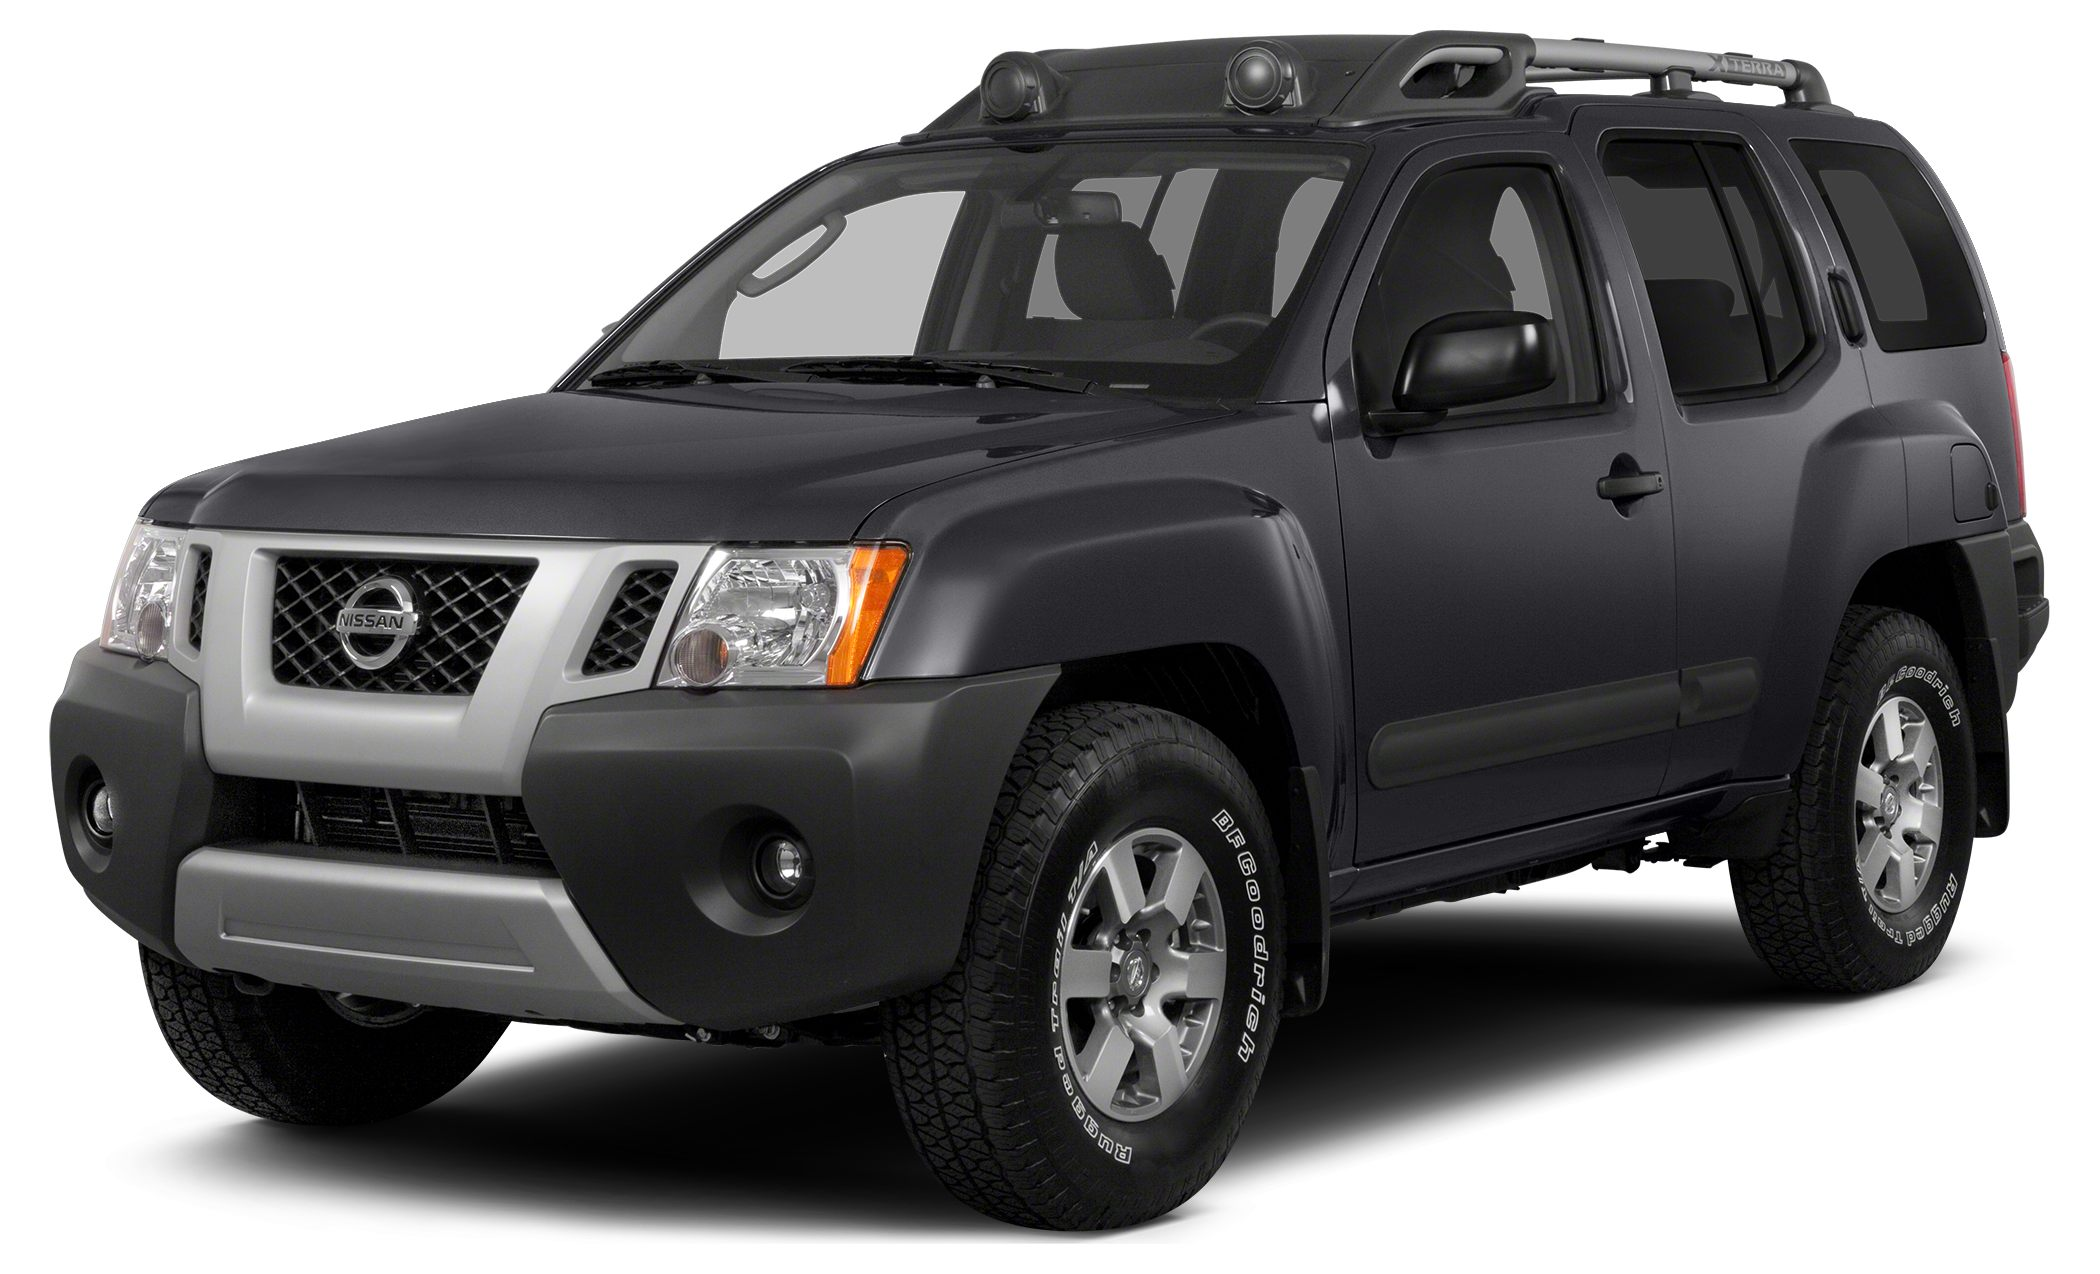 2015 Nissan Xterra PRO-4X The Xterra is a remarkable vehicle from its edgy appearance to its devot